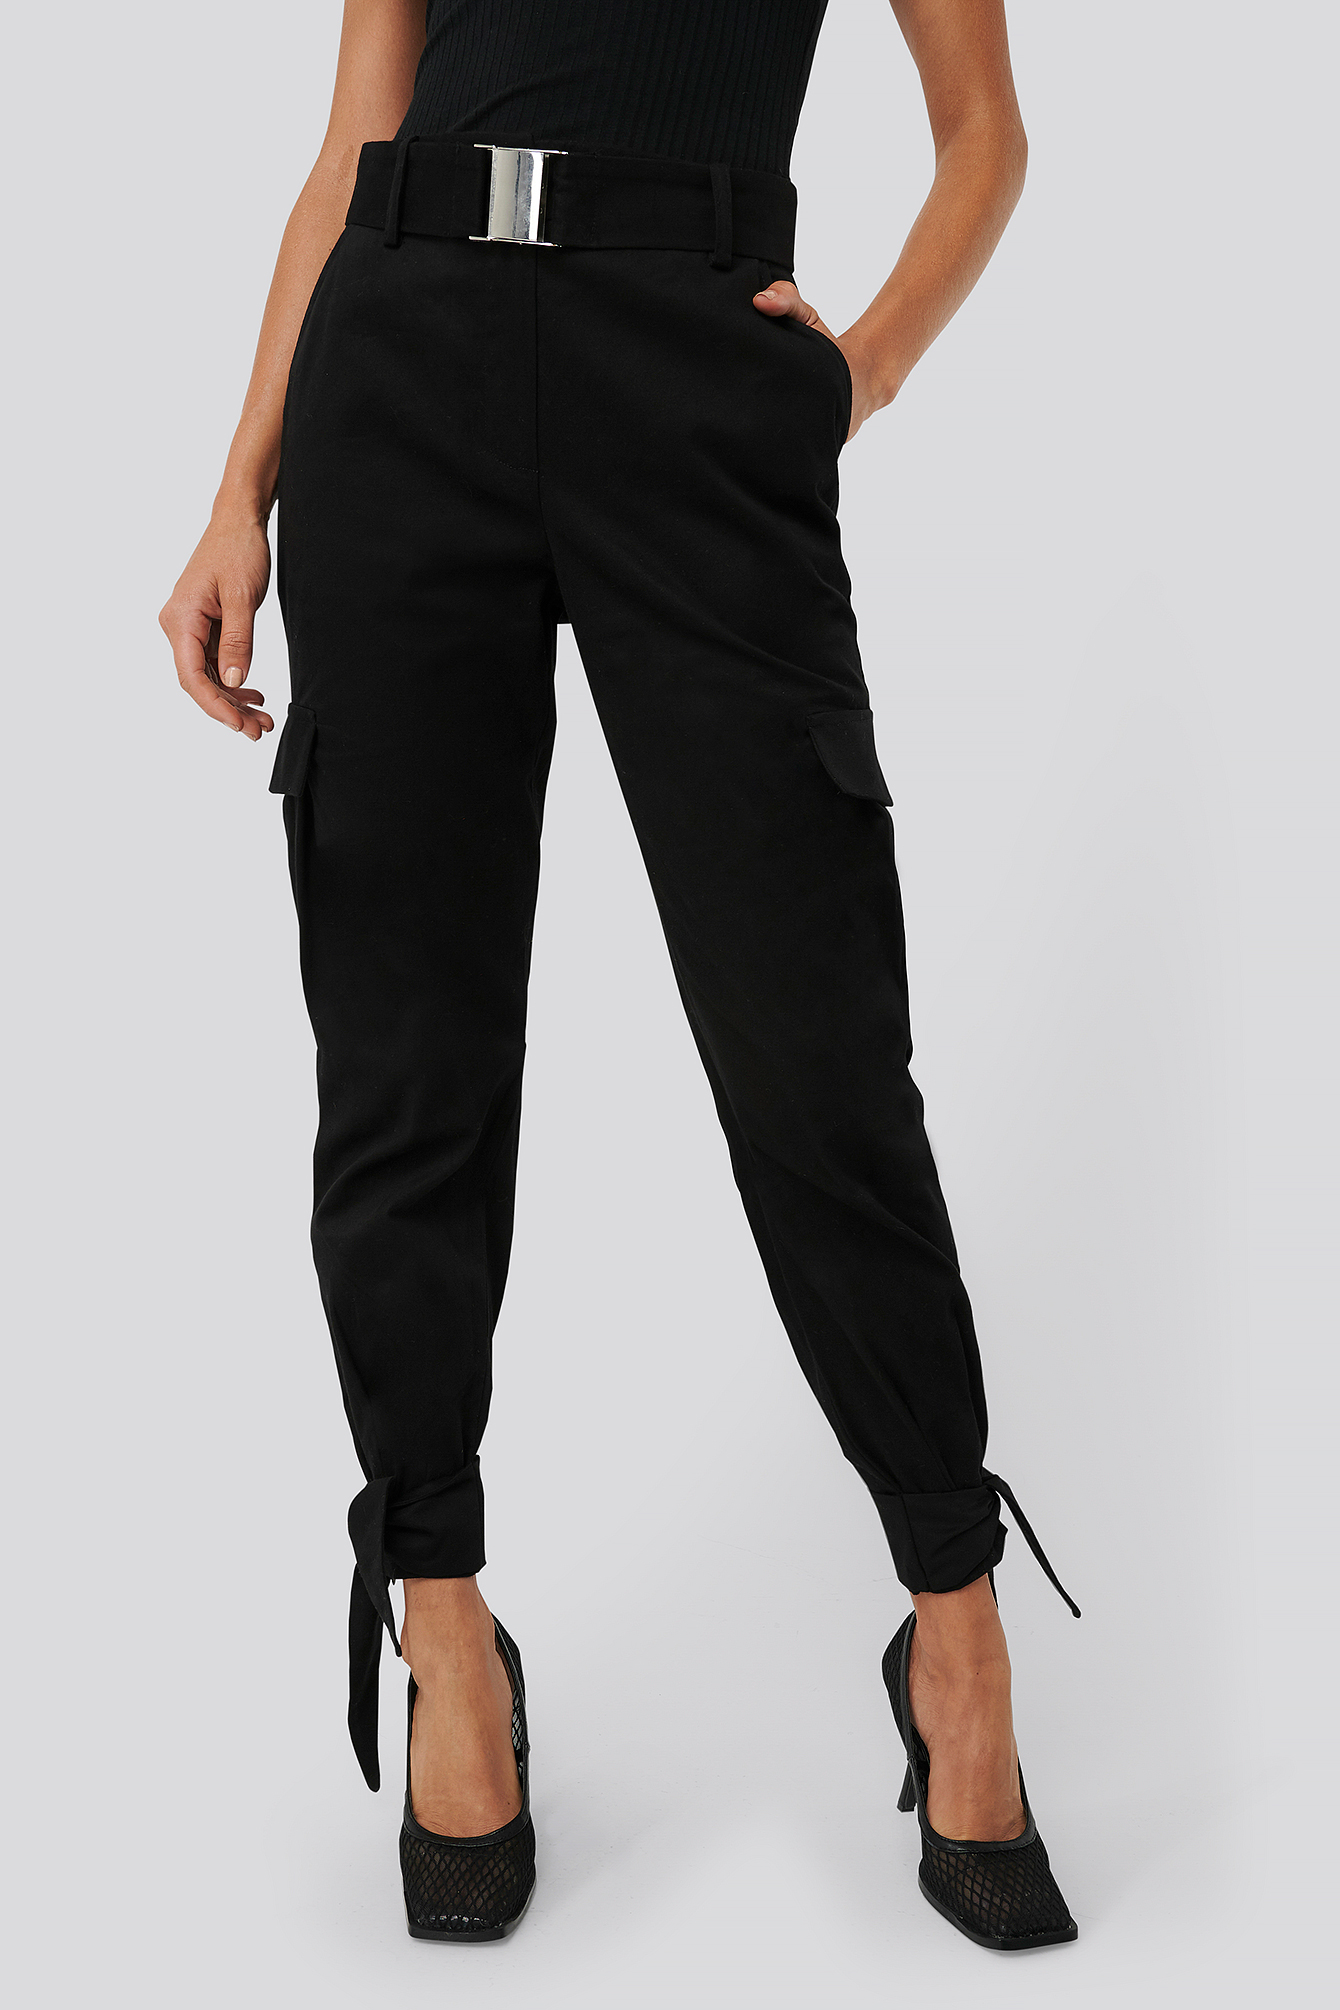 Black Knot Detail Cargo Pants